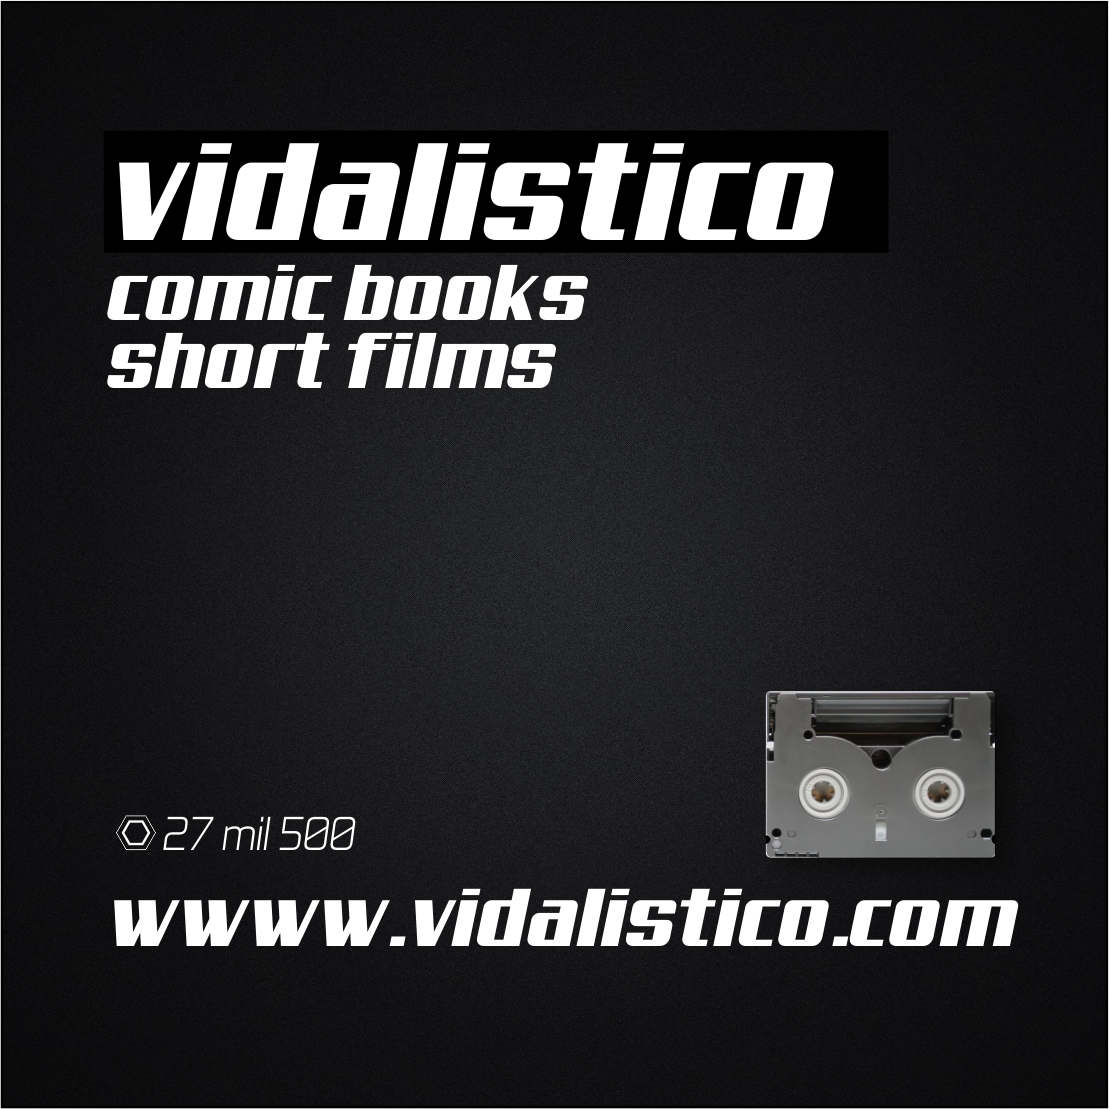 vidalistico shortfilms